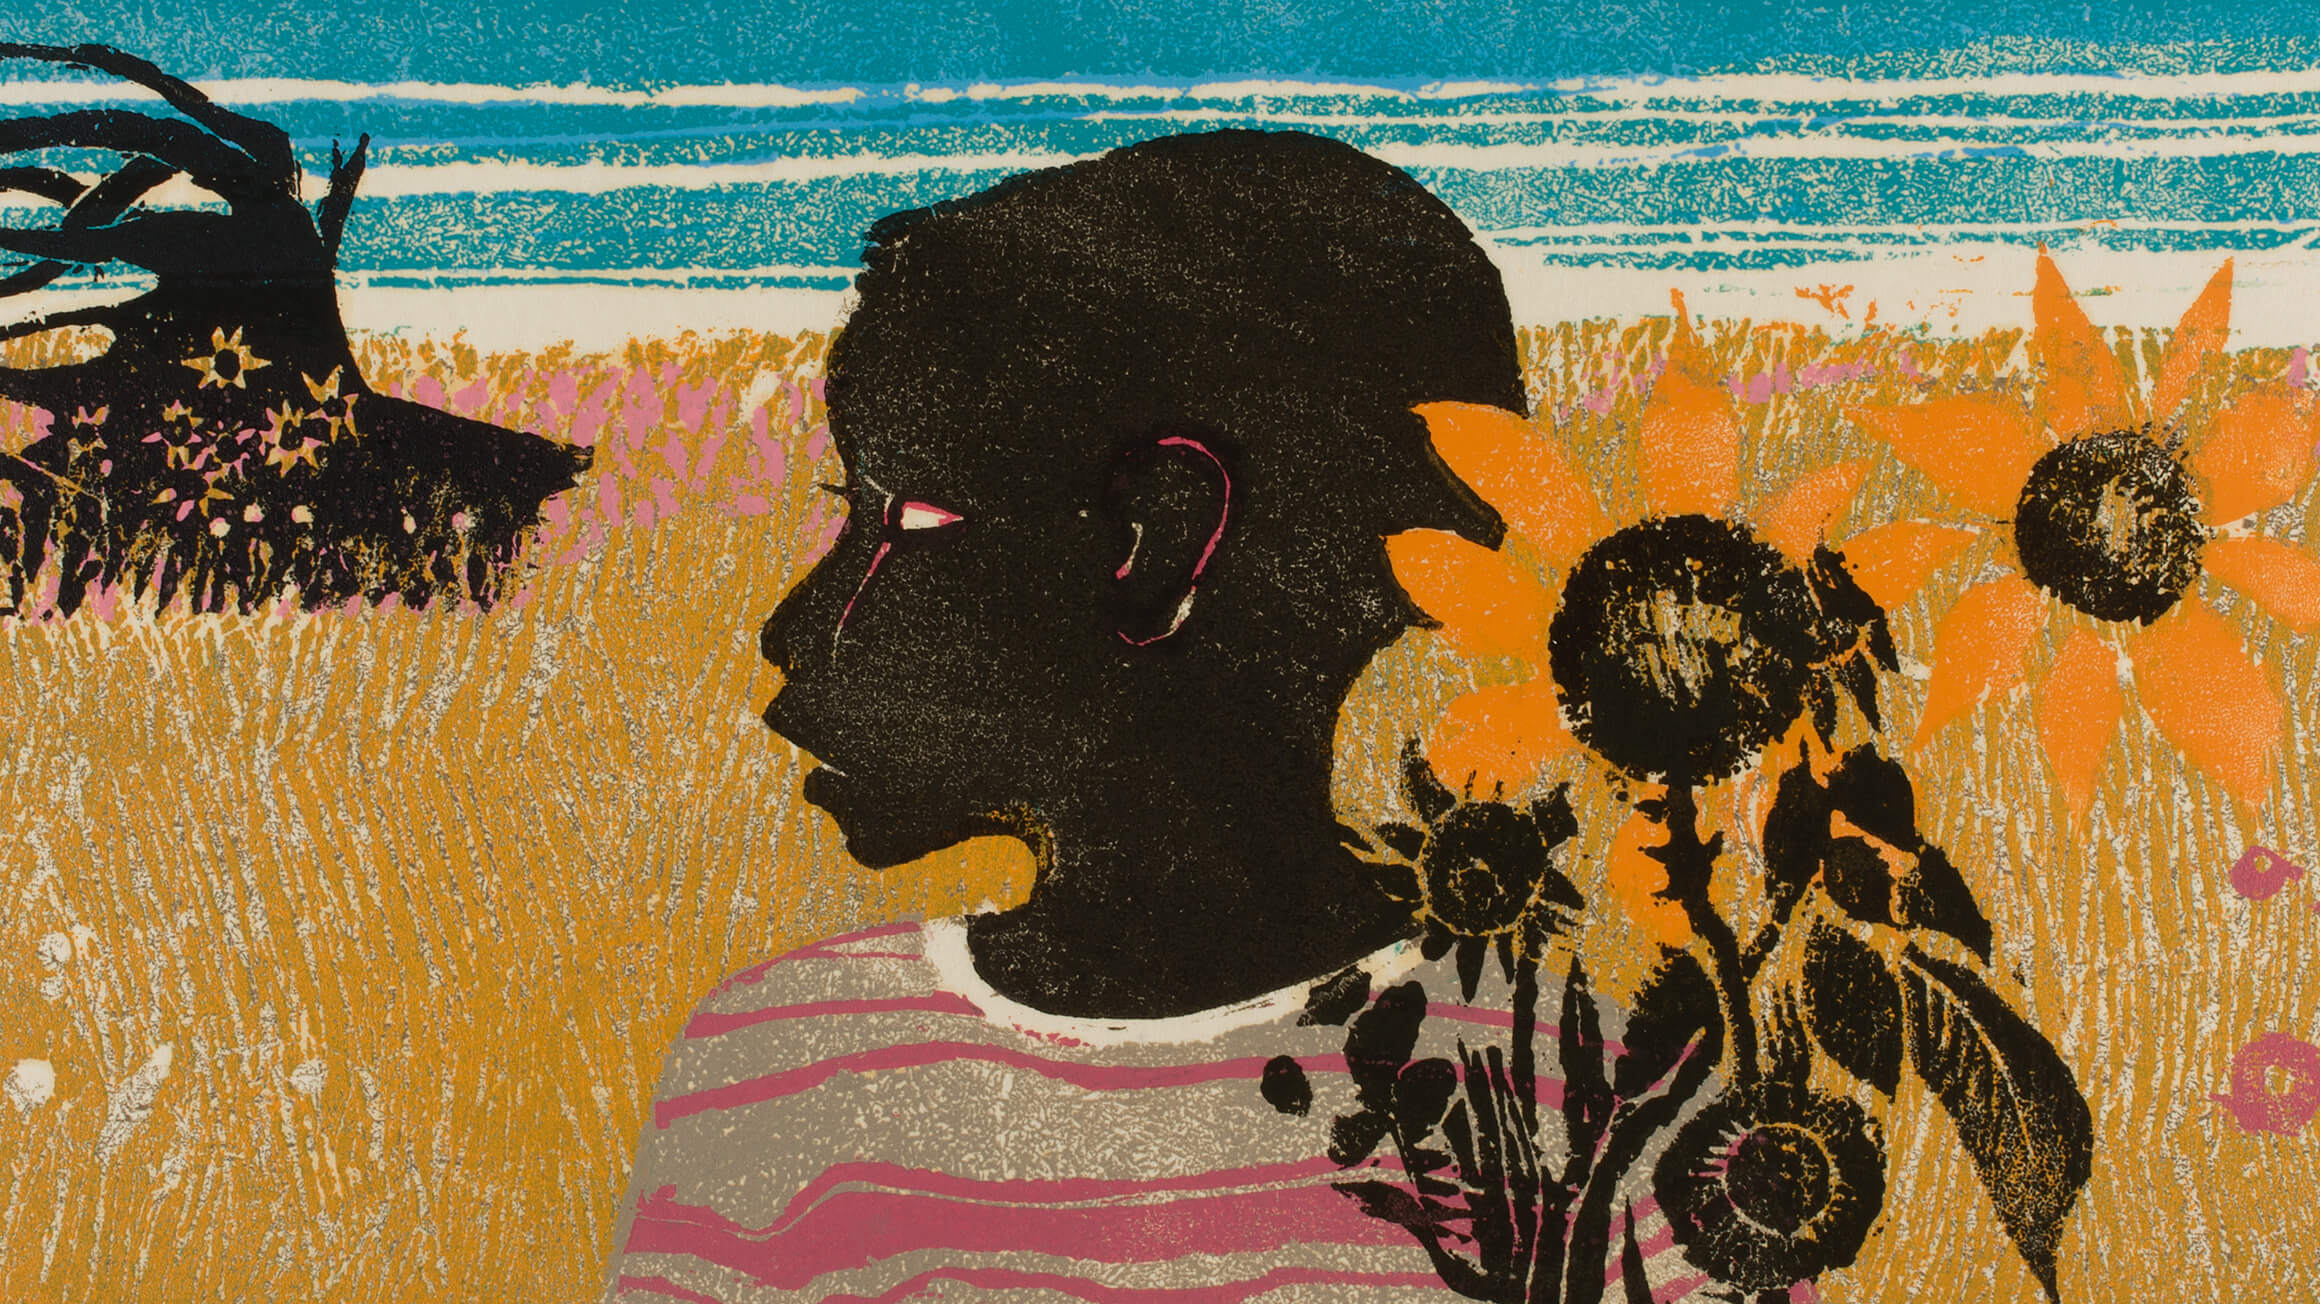 Boy with Sunflowers (detail), 1965, by Walter Henry Williams, Jr.